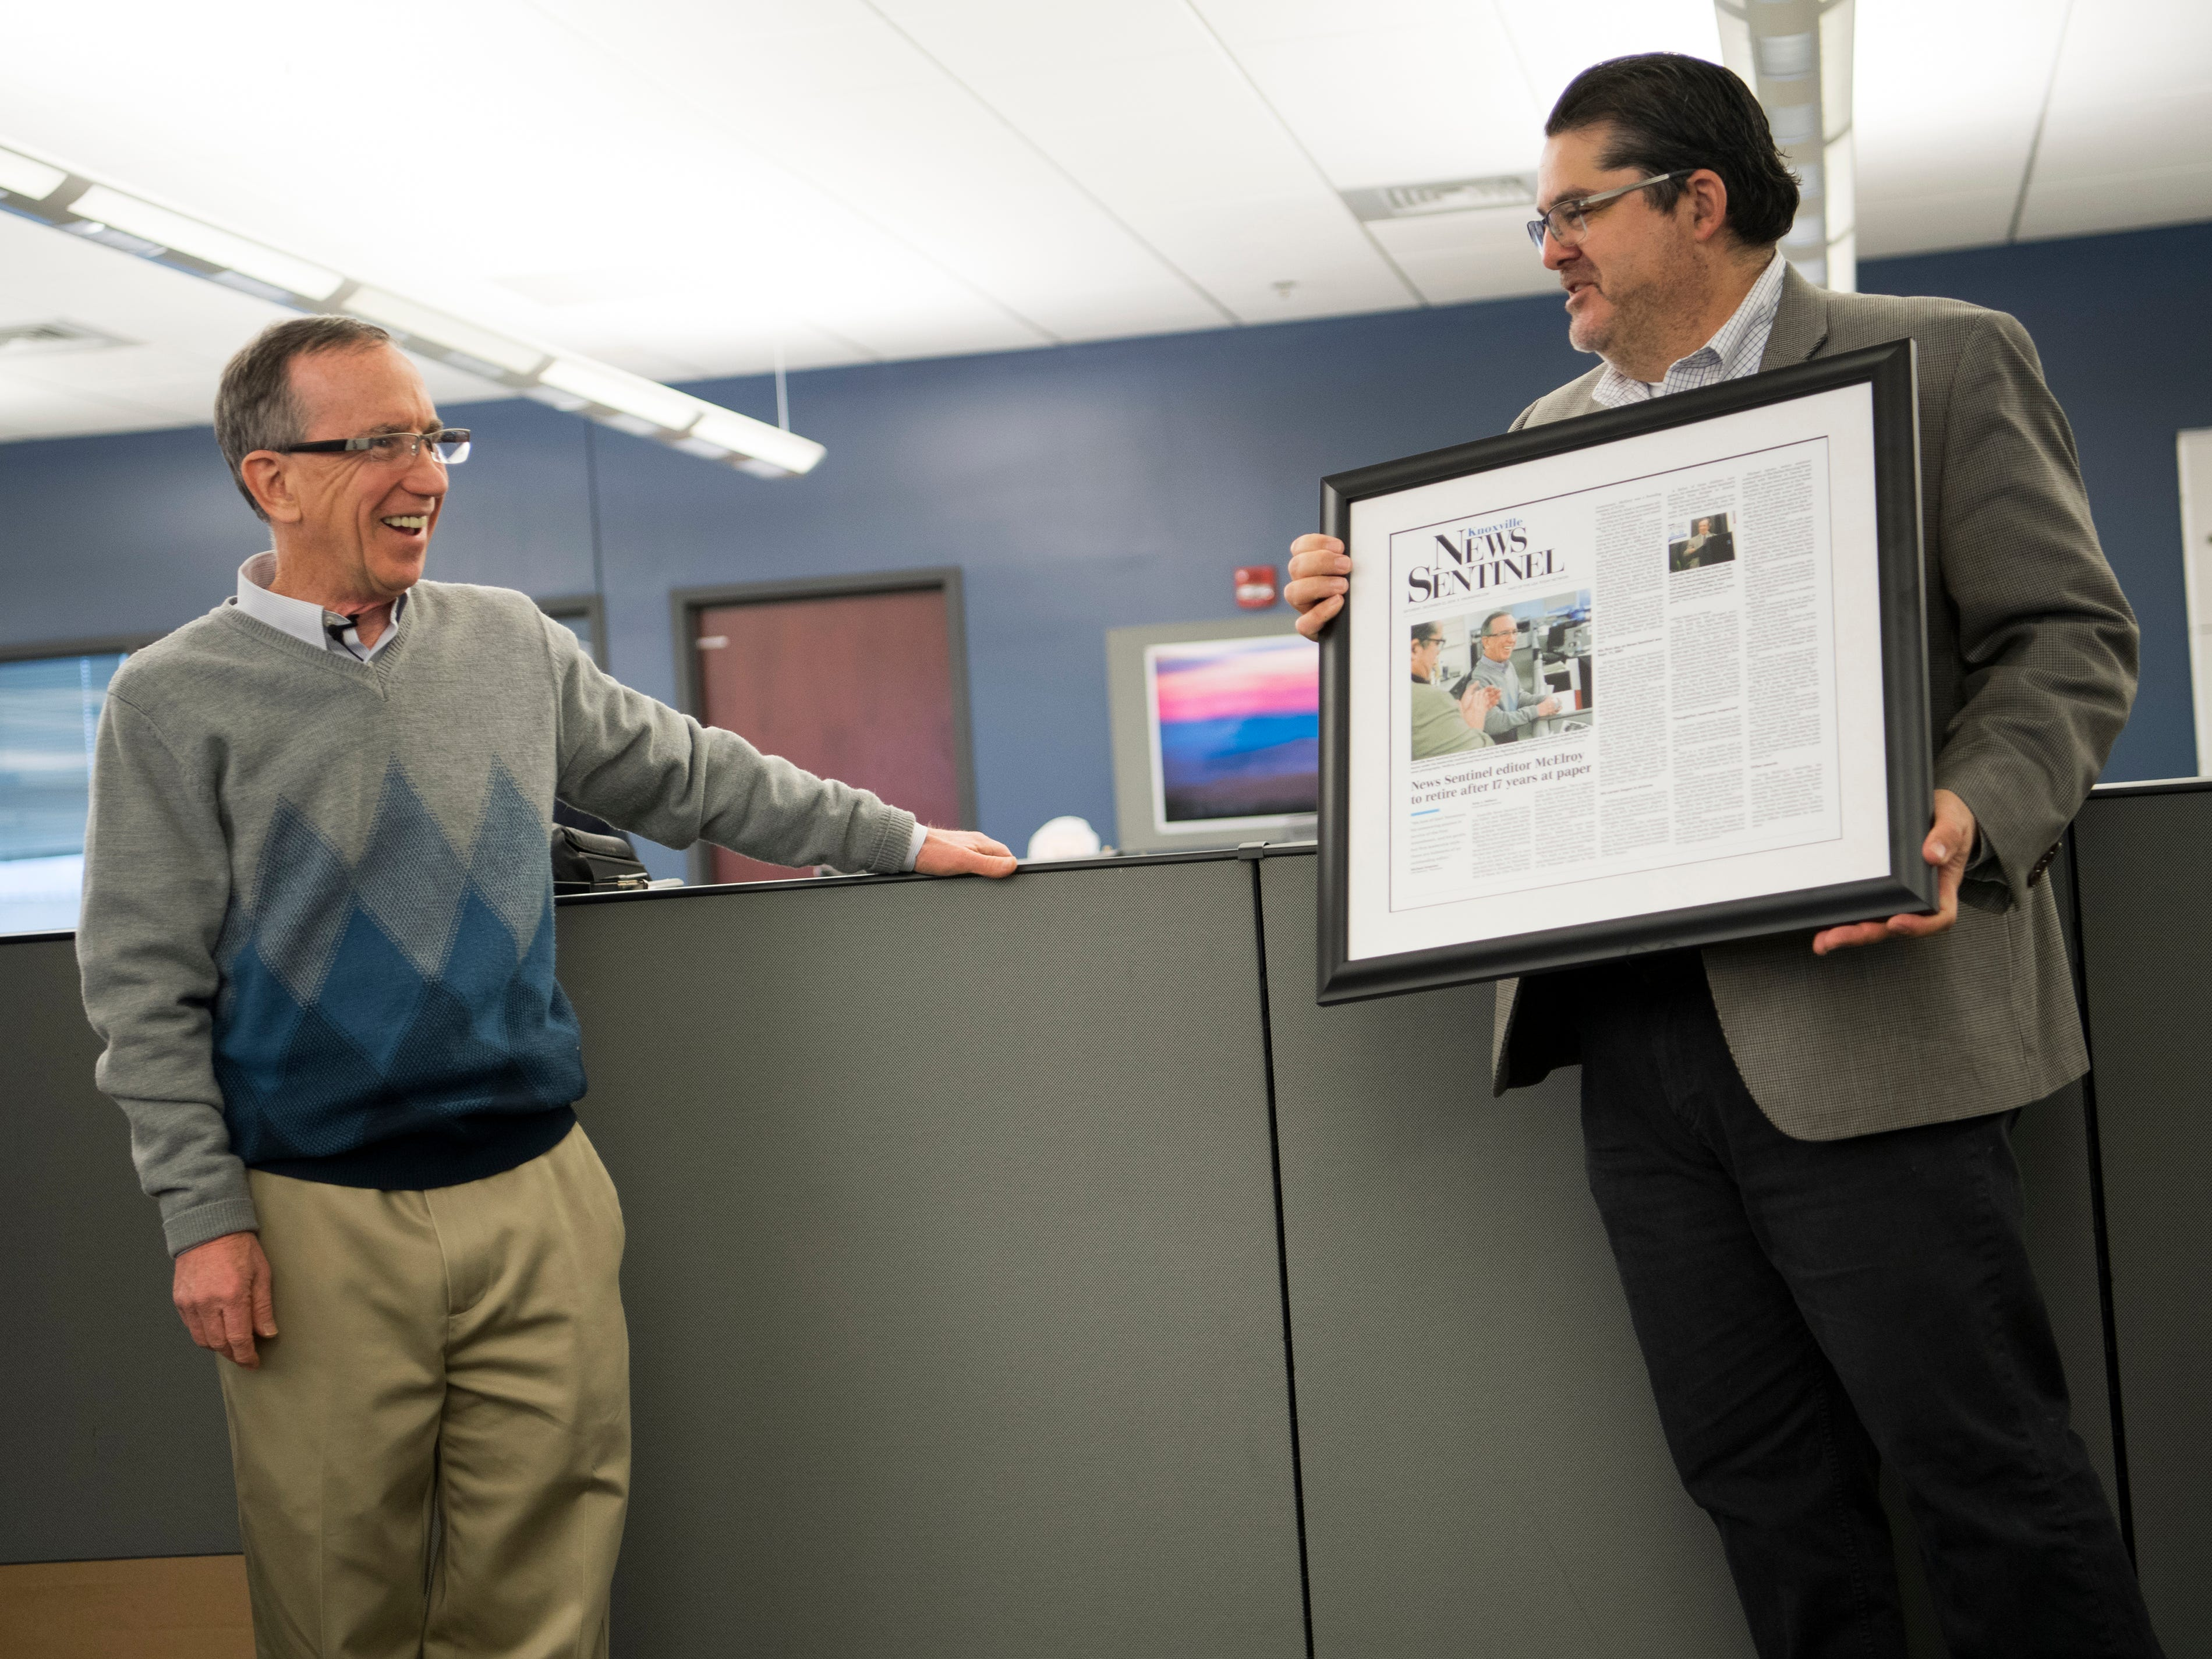 Michael Anastasi, Vice President/News for USA TODAY NETWORK Tennessee, shows executive editor Jack McElroy a framed News Sentinel front page during a celebration for the retirements of executive editor Jack McElroy and cartoonist Charlie Daniel in the News Sentinel newsroom on Friday, February 1, 2019.